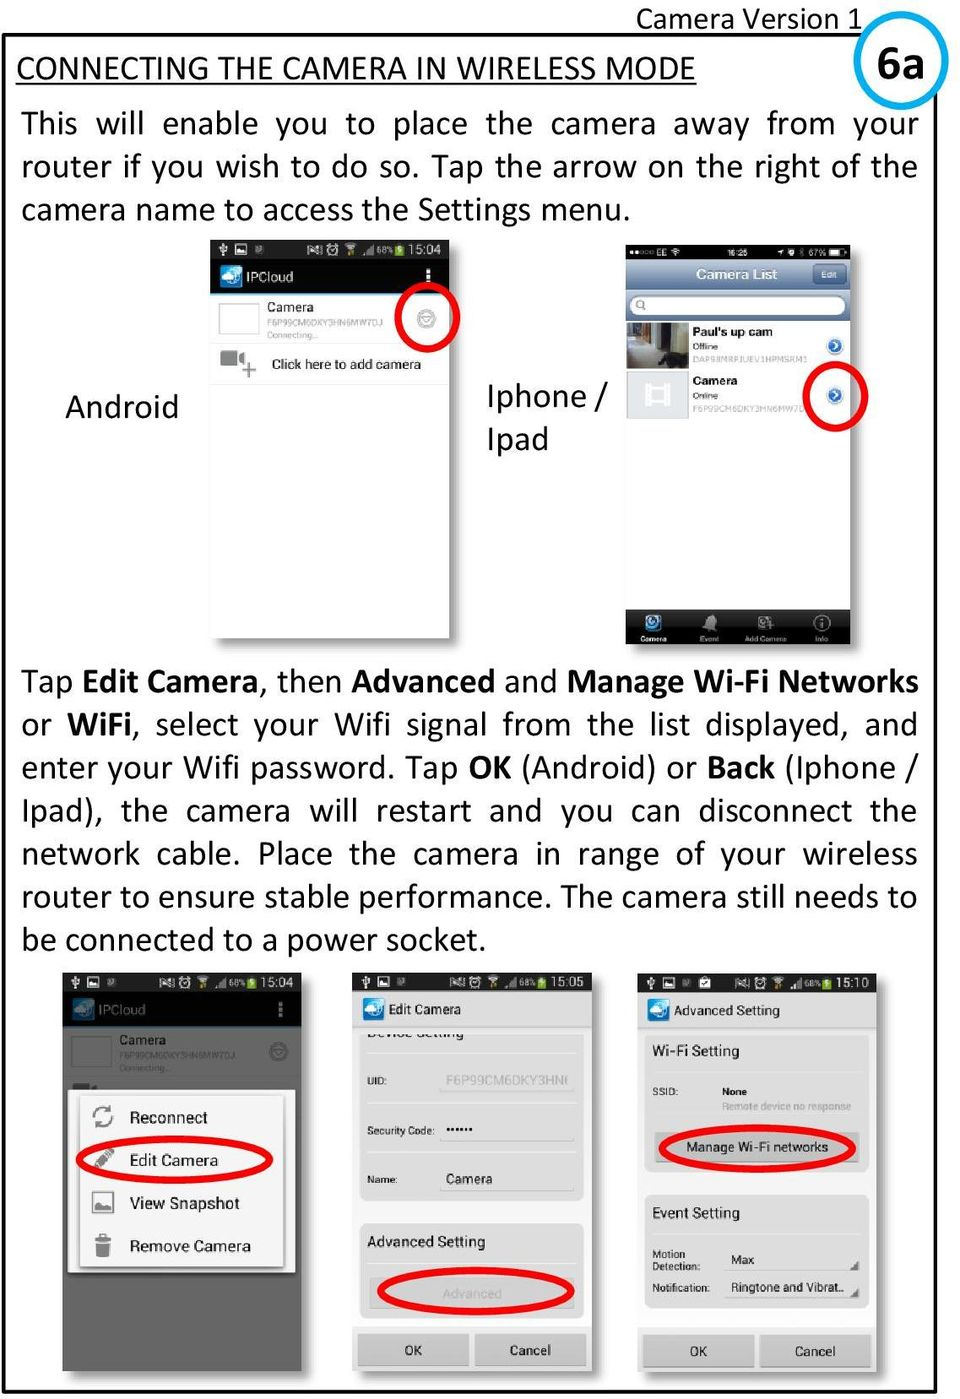 Android Iphone / Ipad Tap Edit Camera, then Advanced and Manage Wi-Fi Networks or WiFi, select your Wifi signal from the list displayed, and enter your Wifi